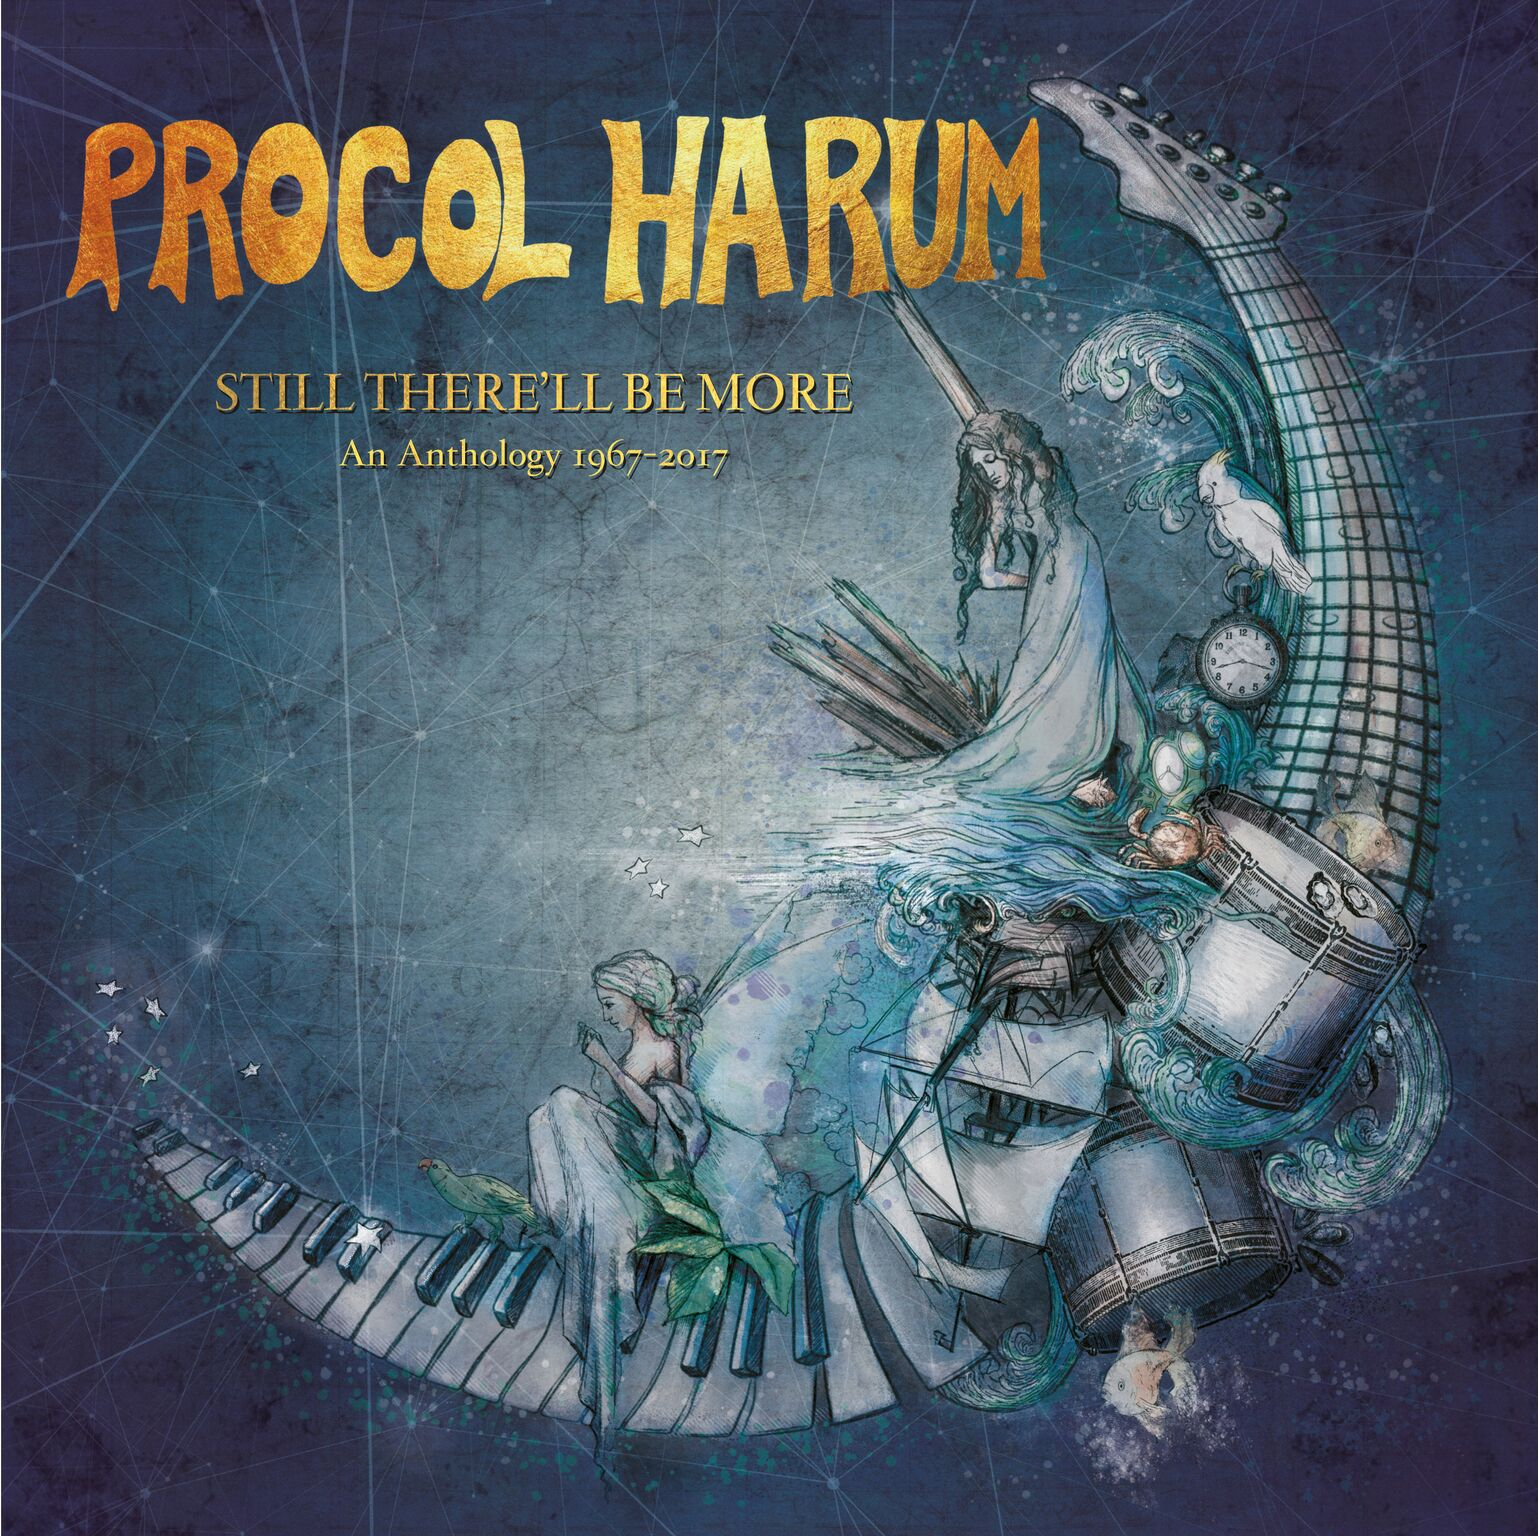 Procol Harum 8 Disc Anthology Arrives Best Classic Bands